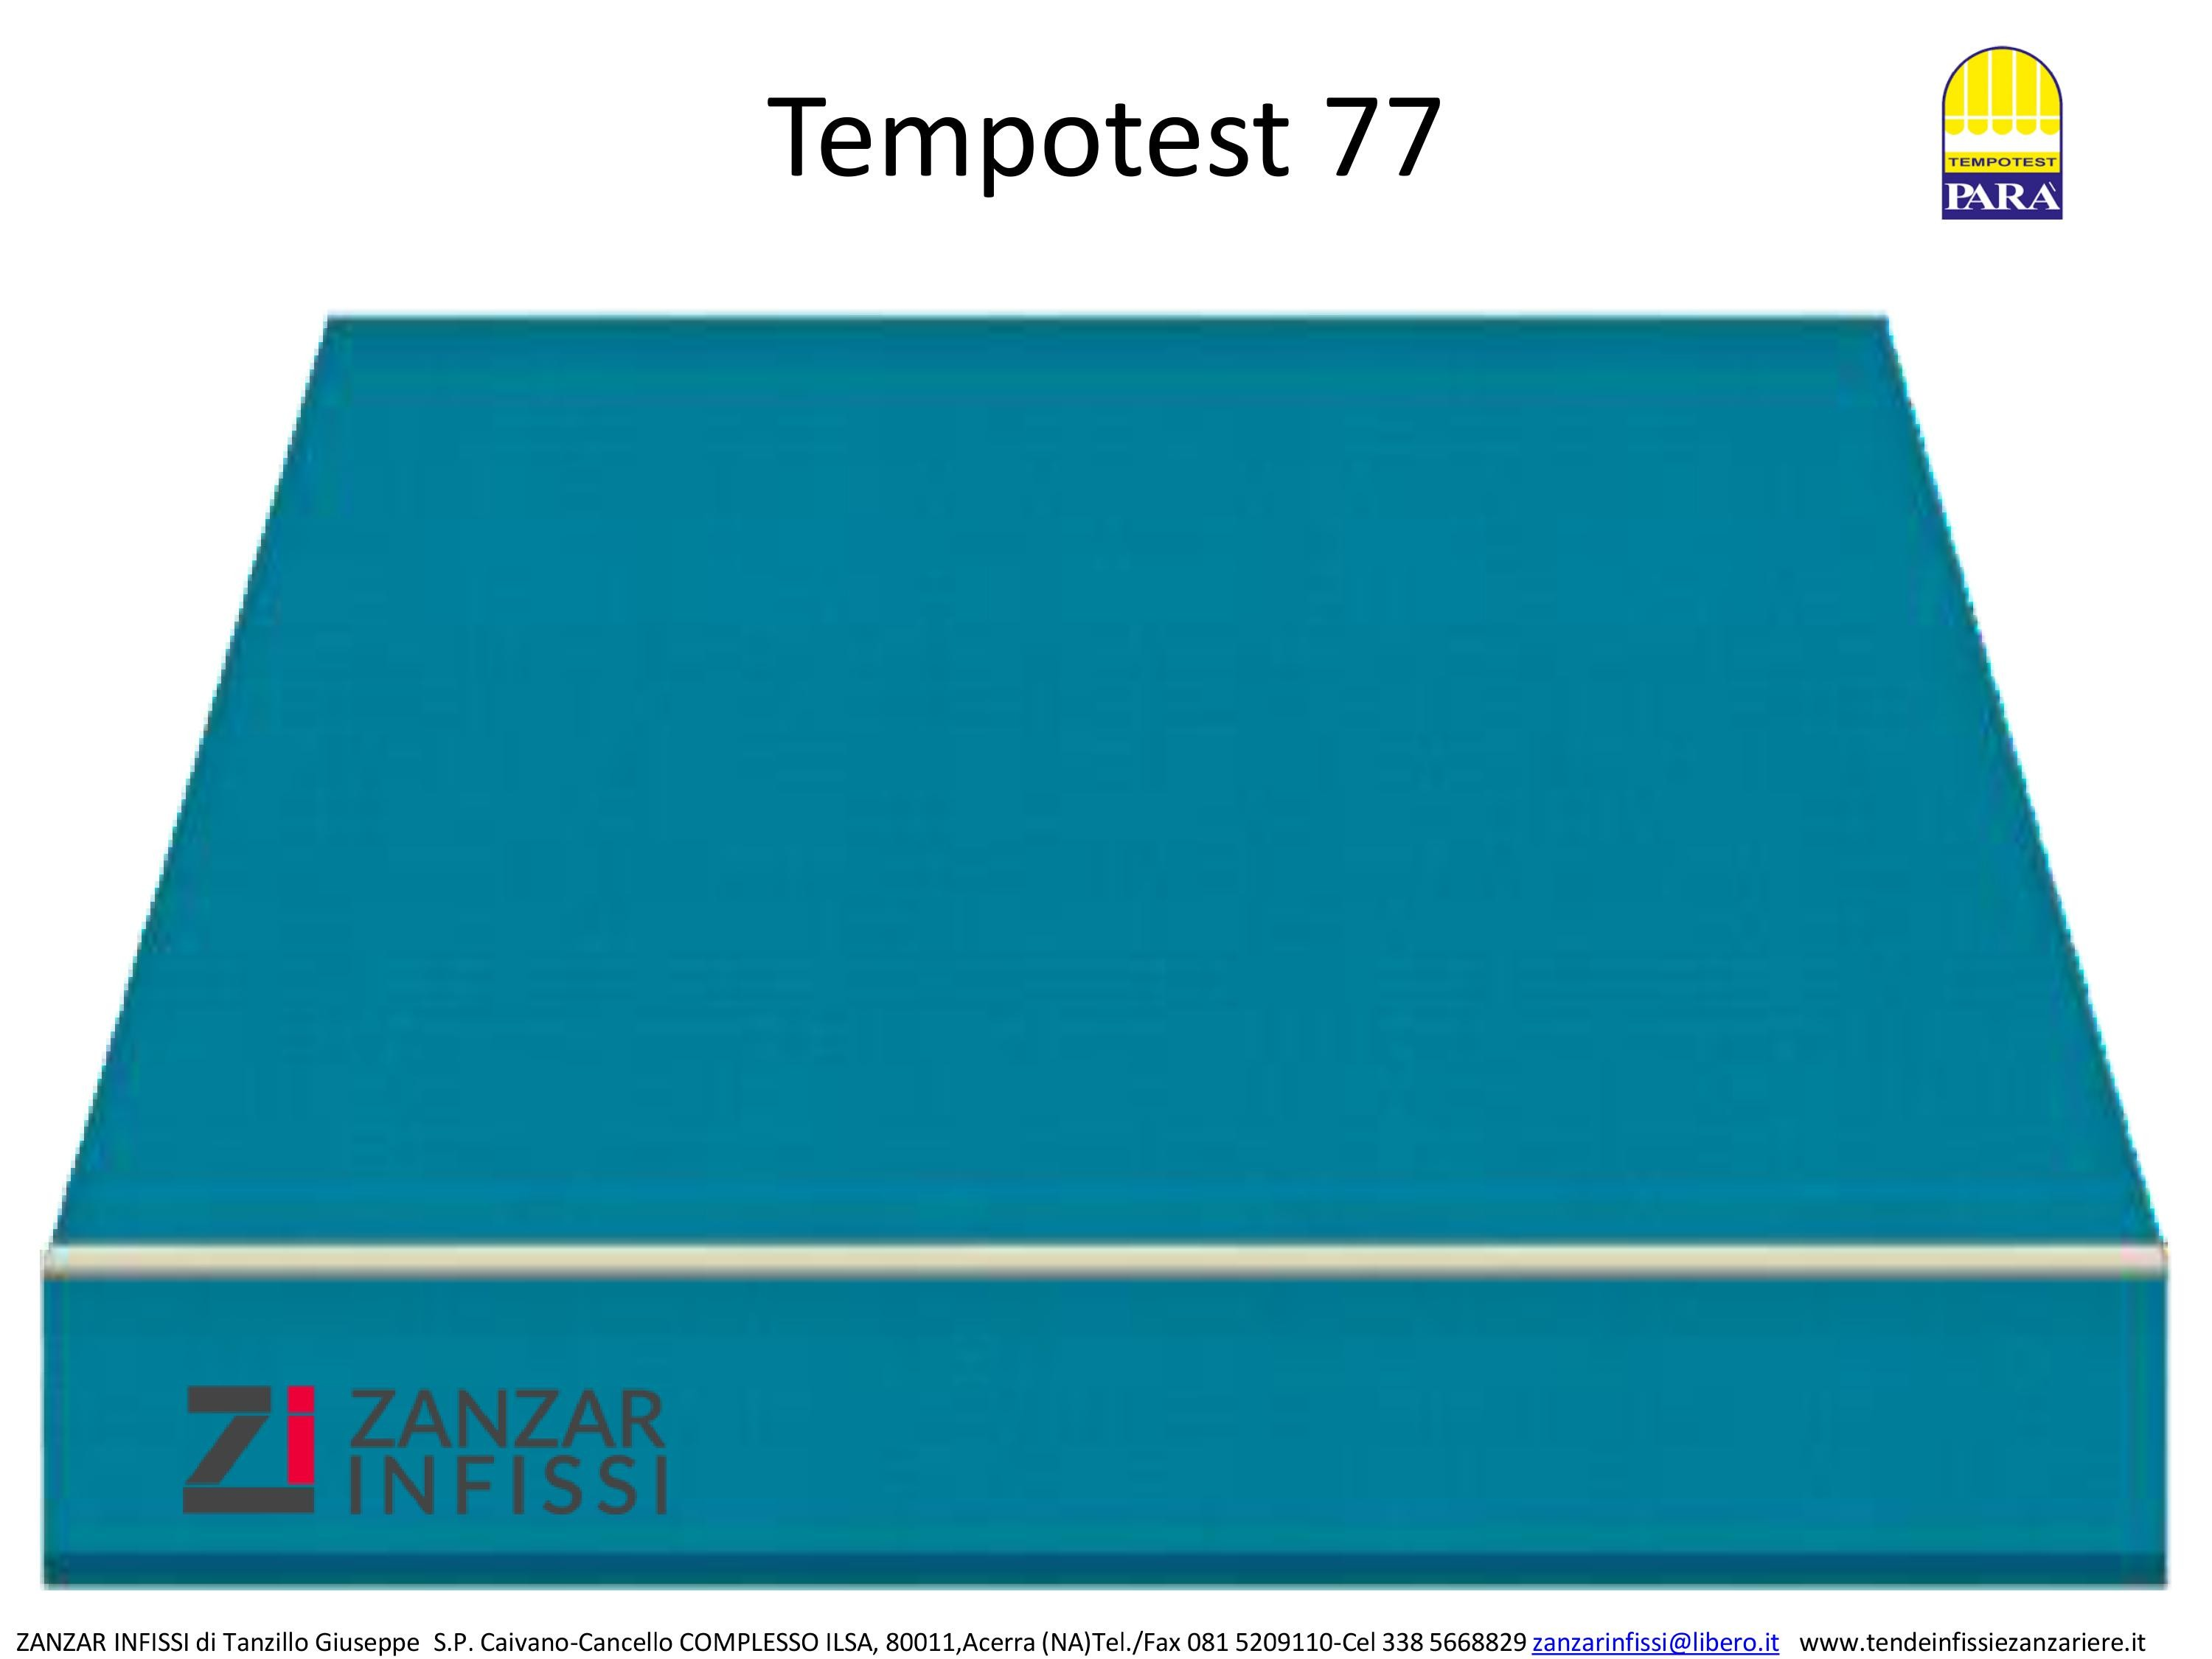 Tempotest 77